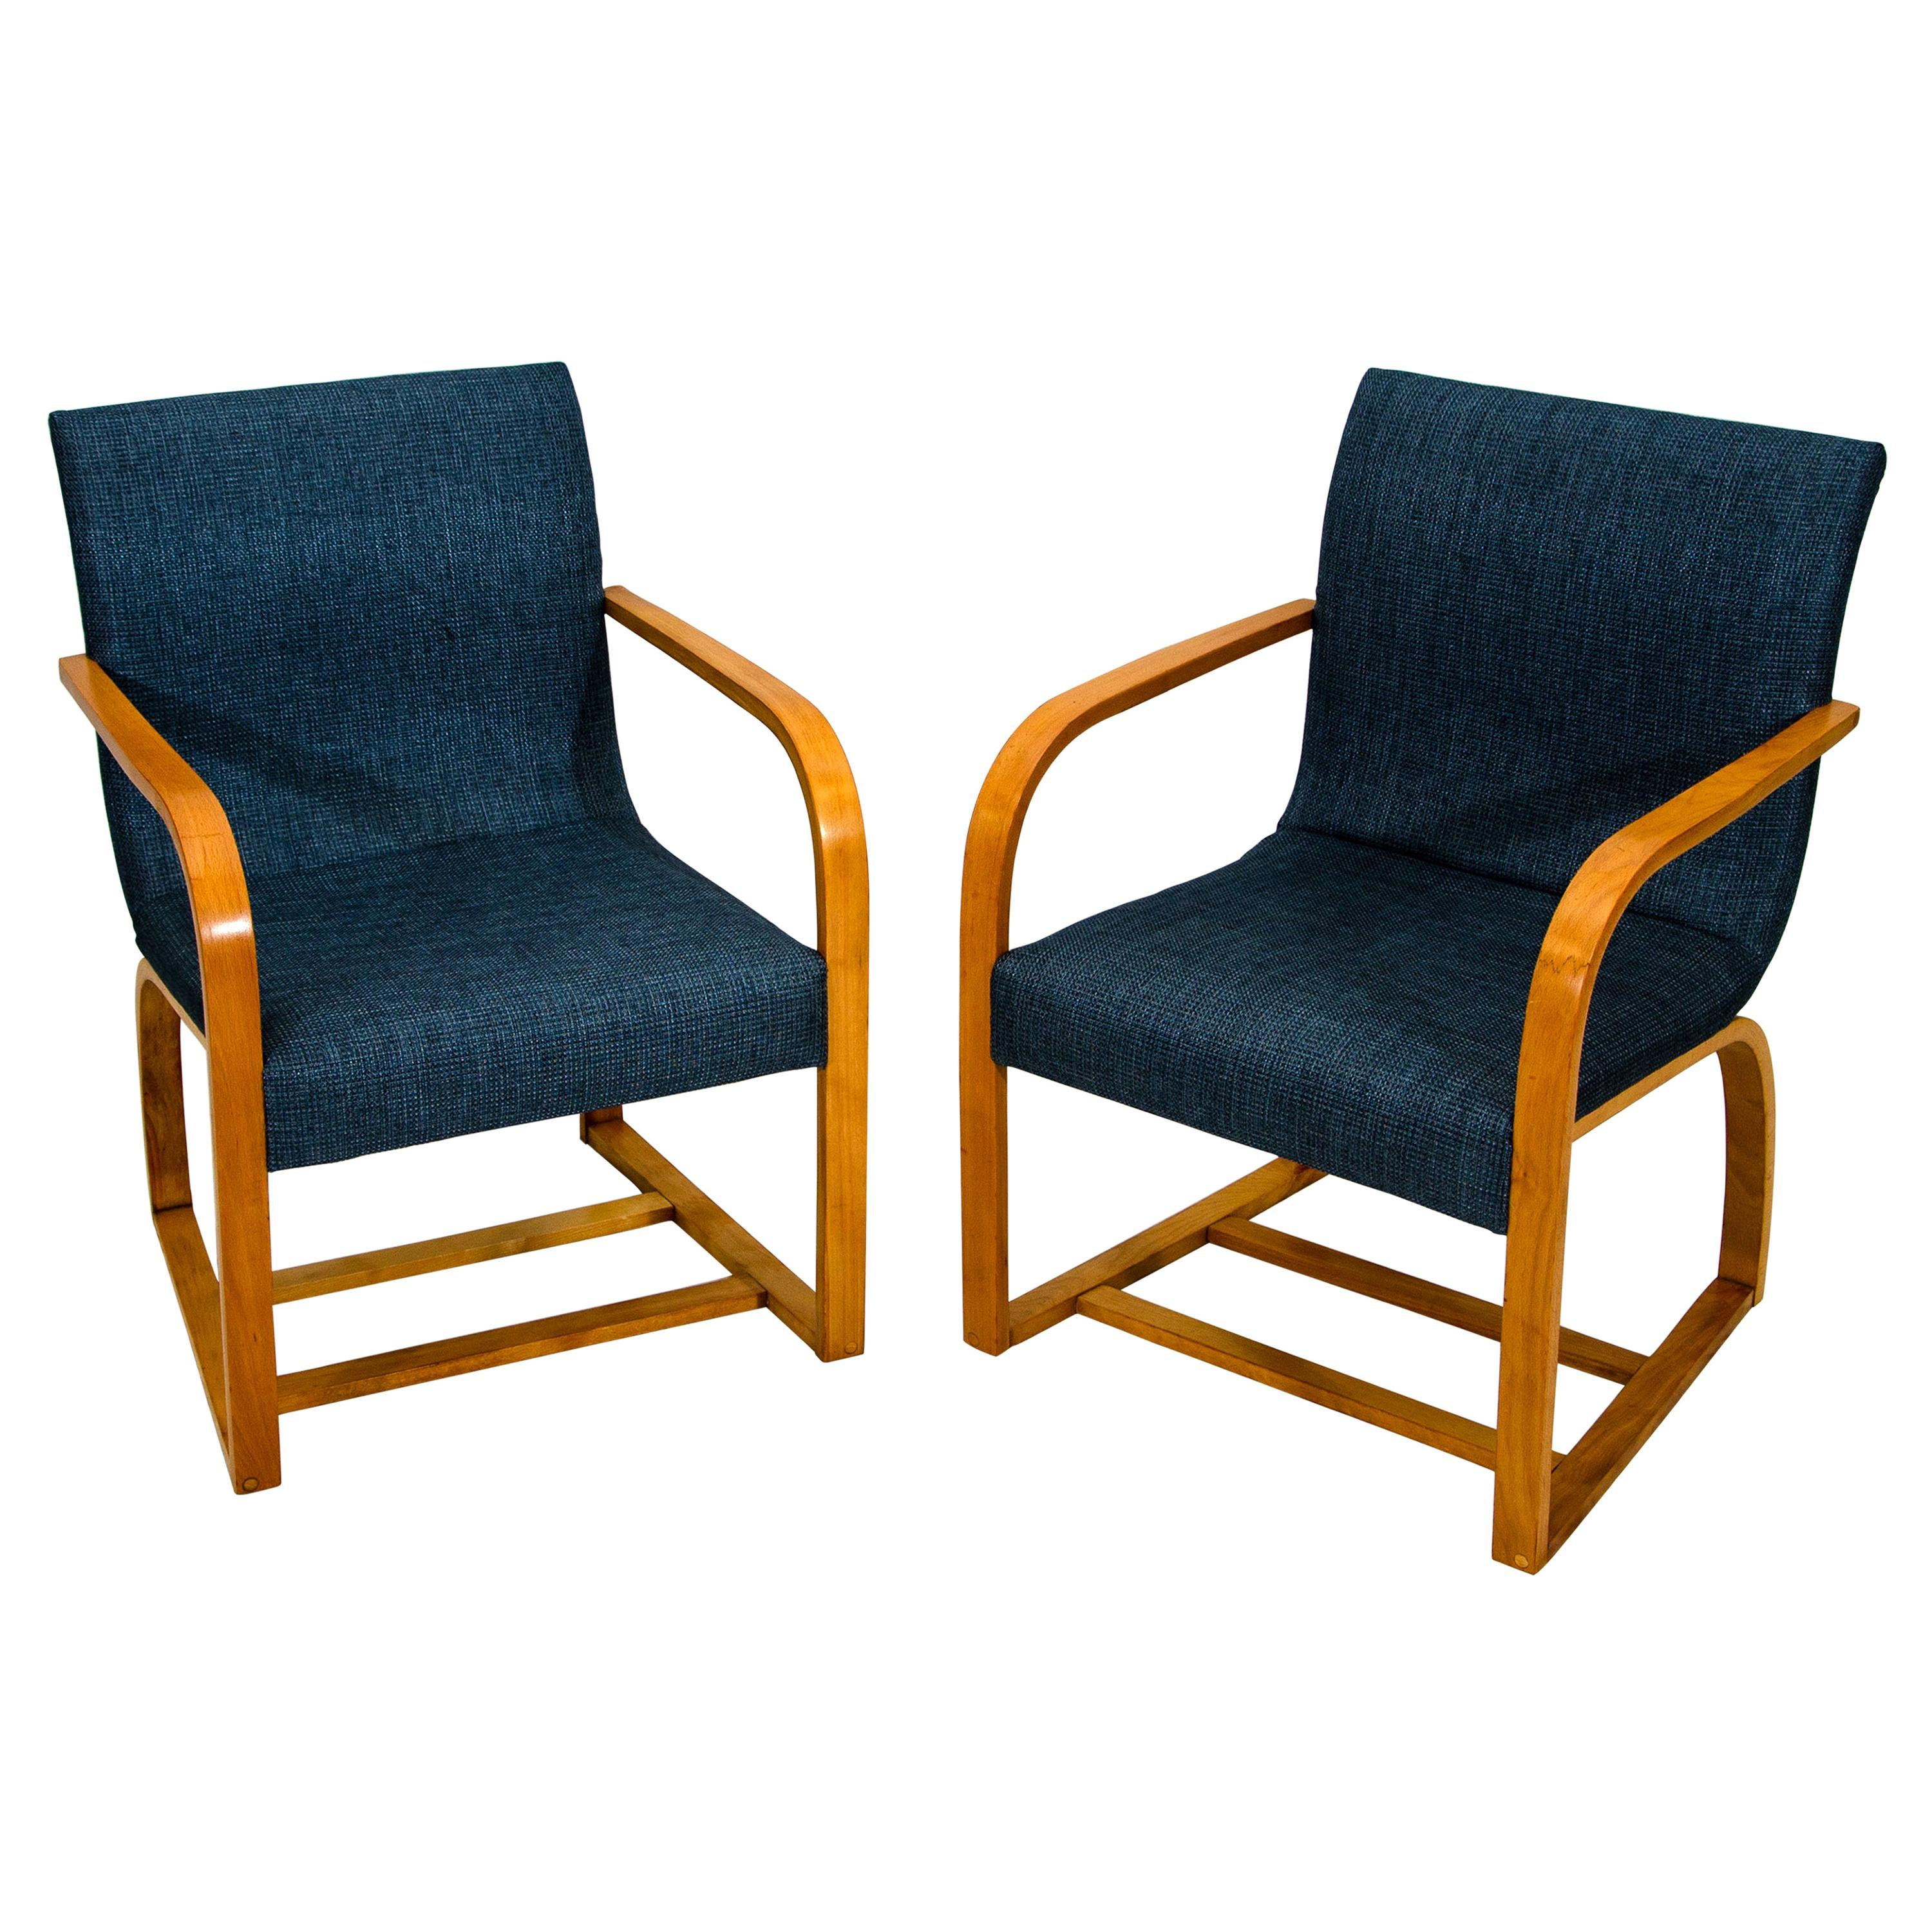 Pair of Lounge Chairs by Gilbert Rohde for Heywood Wakefield, C2794 A